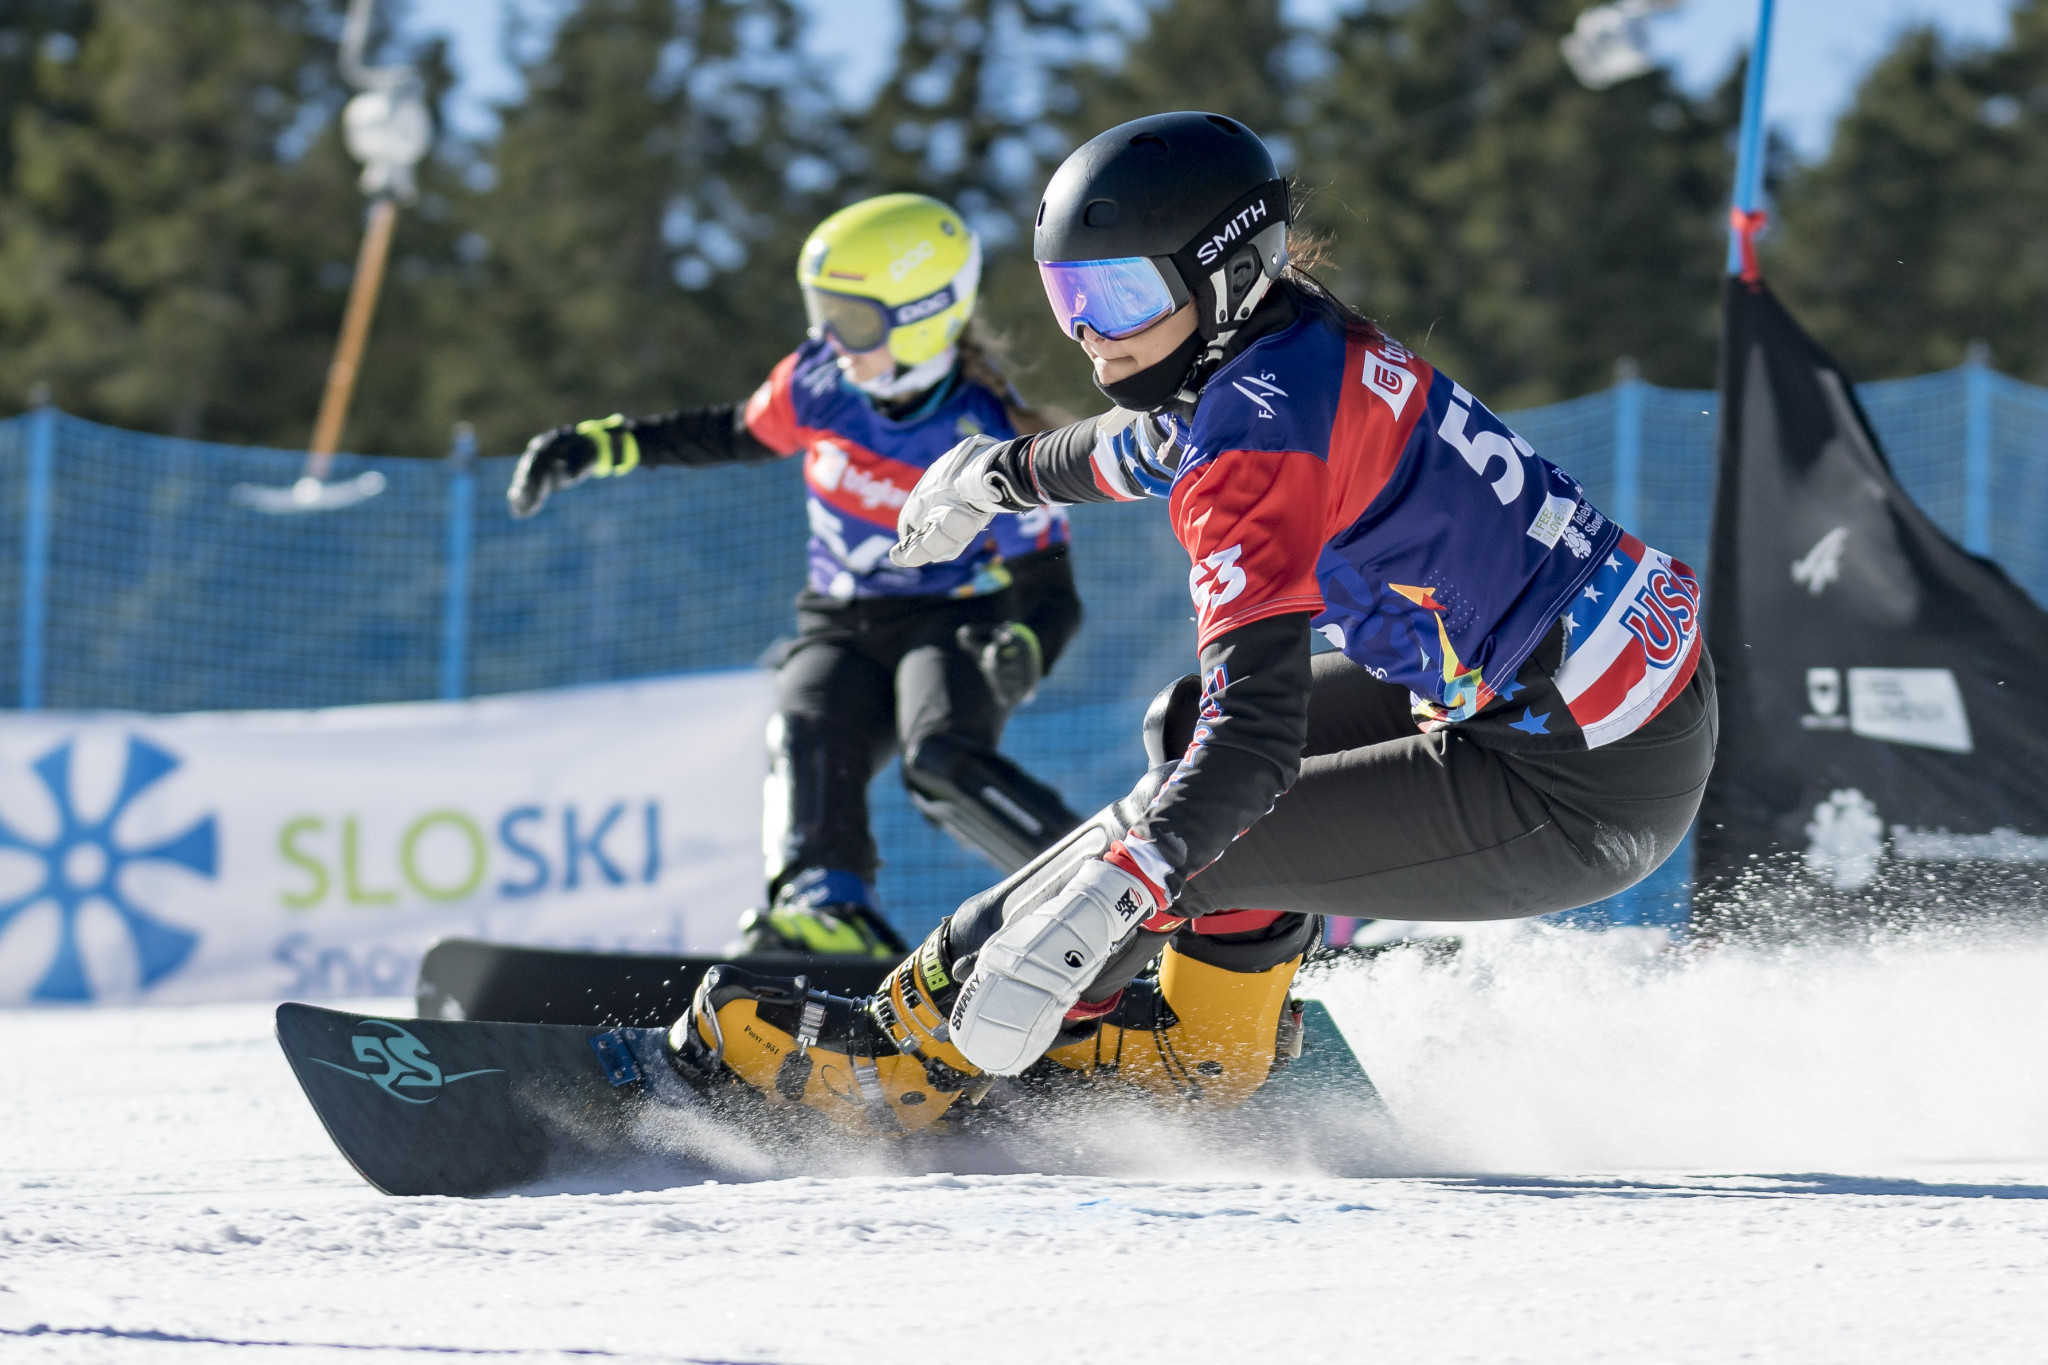 US Ski and Snowboard has announced a four-year partnership with the National Brotherhood of Skiers ©Getty Images